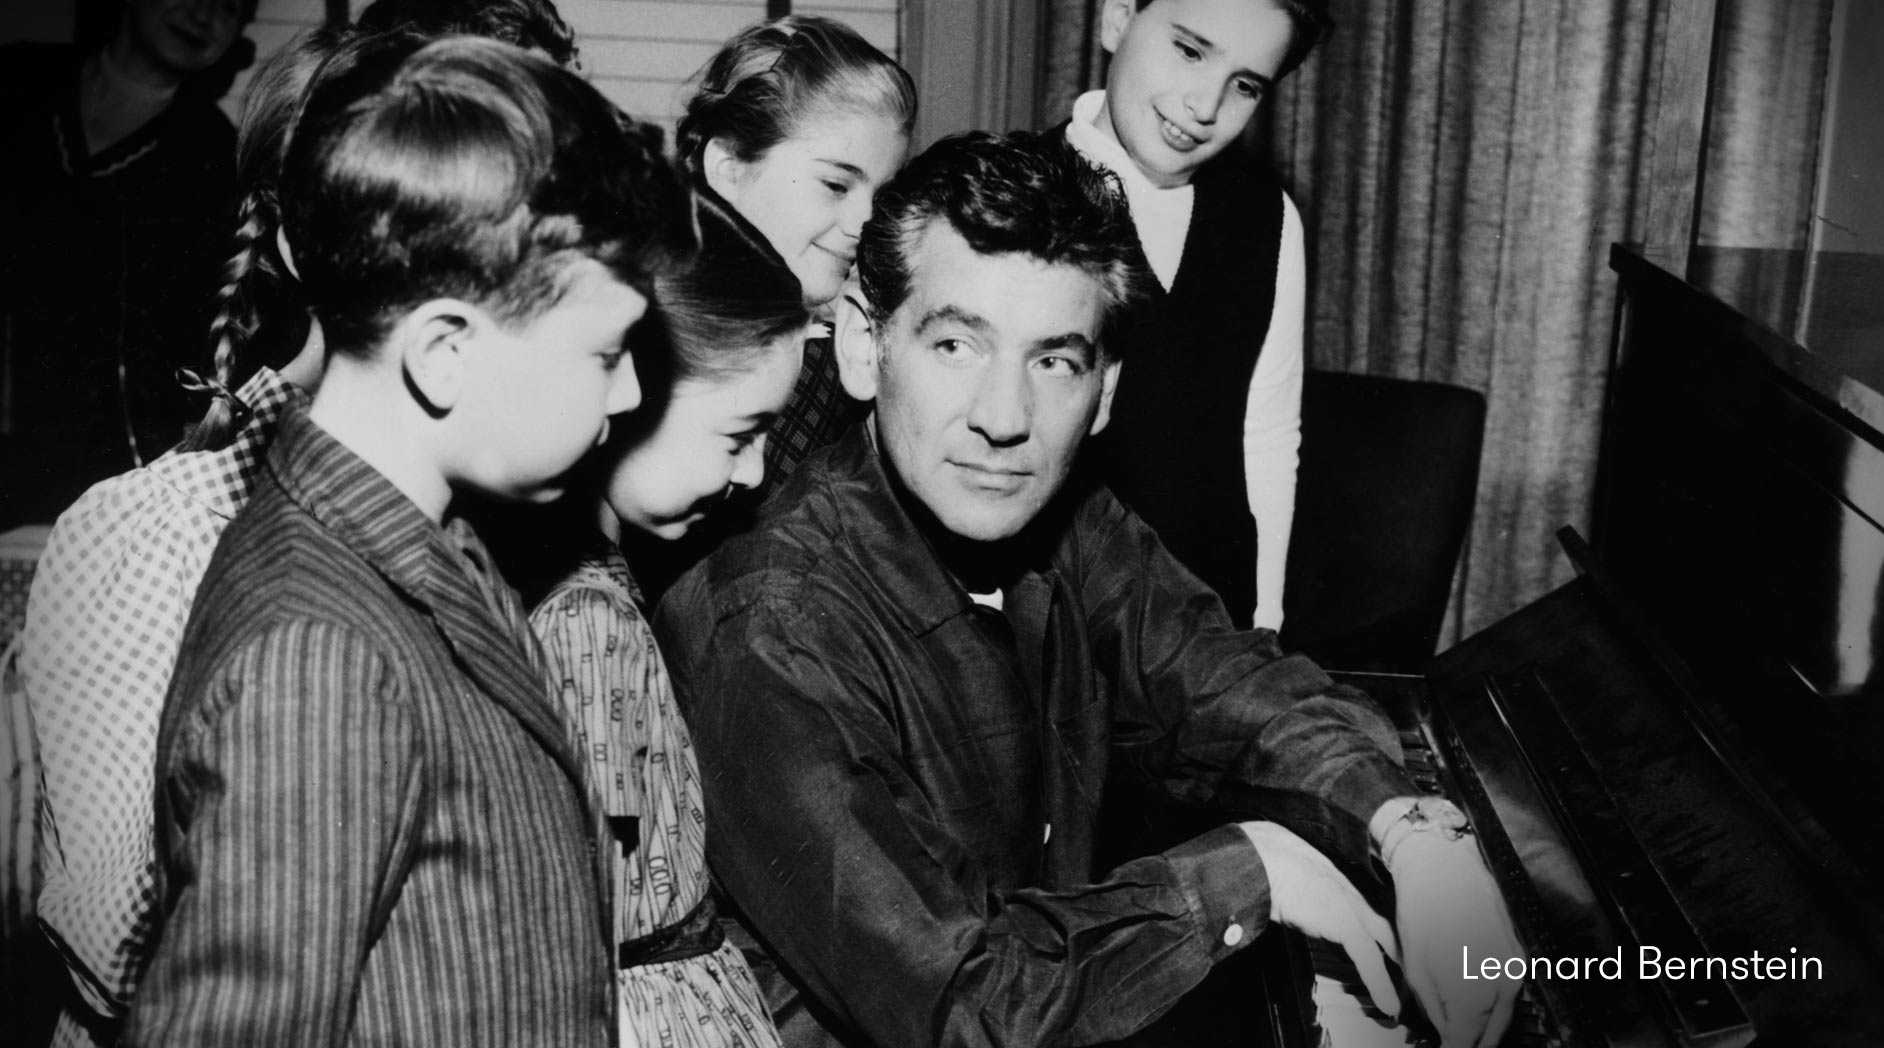 Leonard Bernstein and children